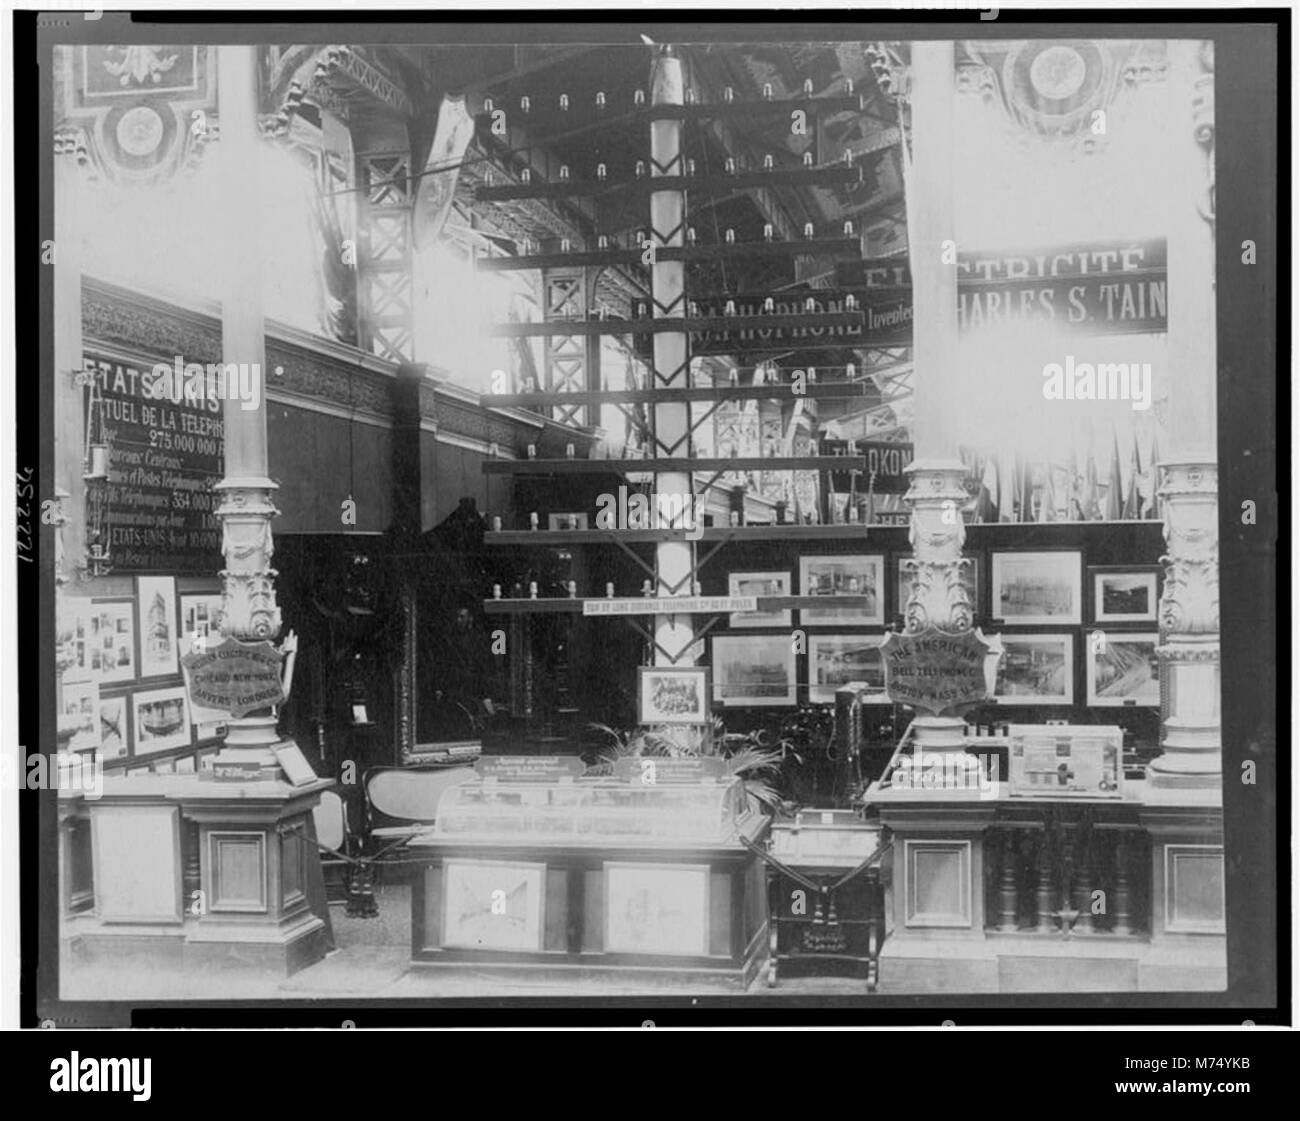 American Bell Telephone Co. and Western Electric Co., Exposition Universelle, Paris, 1889 LCCN00649968 - Stock Image